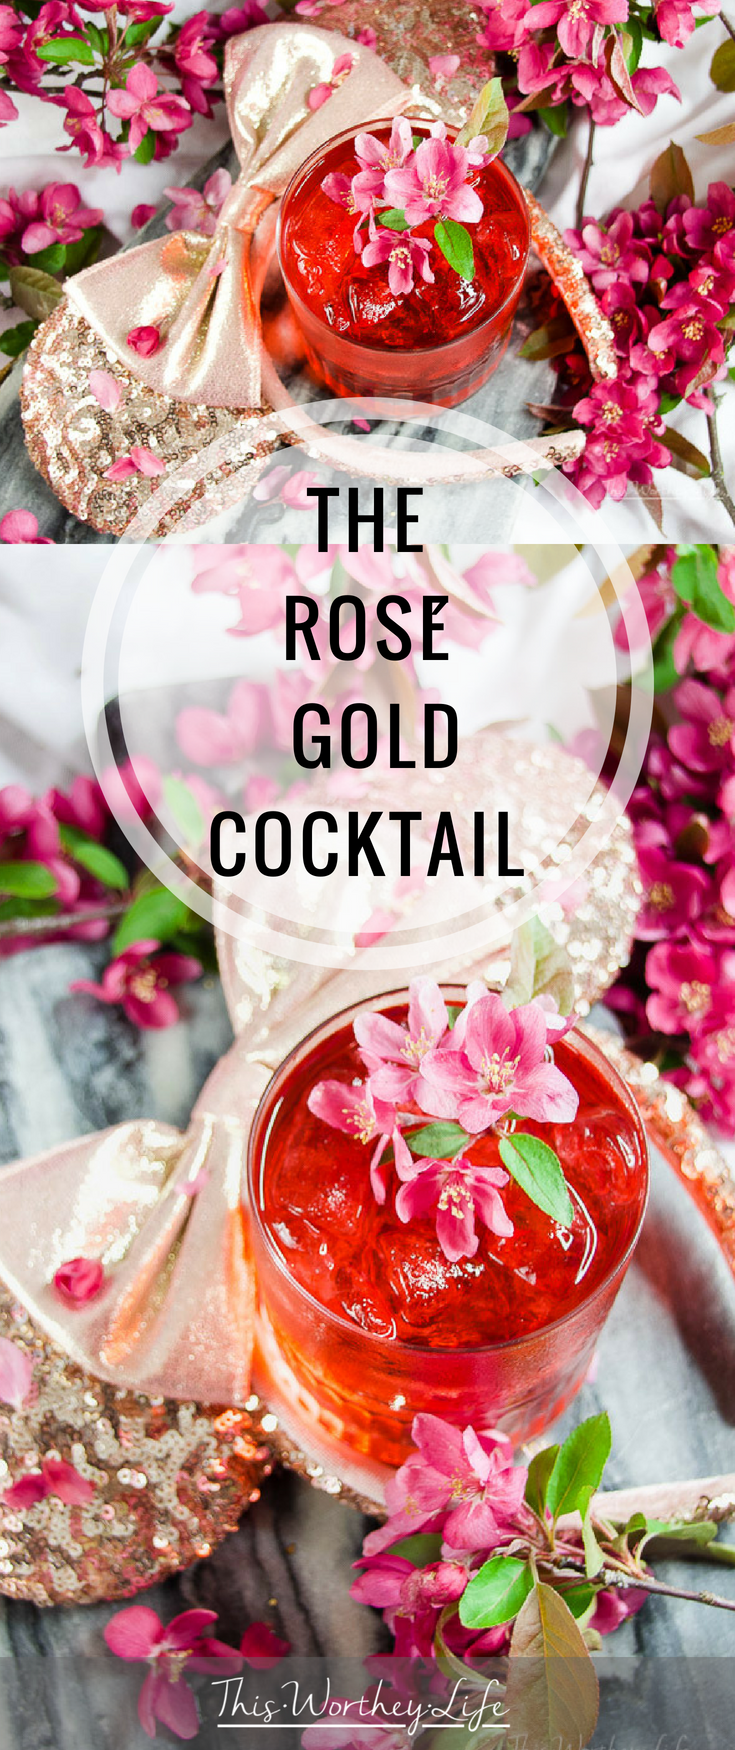 Who knew you could find inspiration from Rose Gold Minnie Mouse ears from Disney? Yup, we've created a gorgeous rose gold cocktail using vodka, rose lemonade, Rosé wine, and pink rose simple syrup. See how we put this The Rosé Gold Cocktail together on the blog and give it a try this weekend!